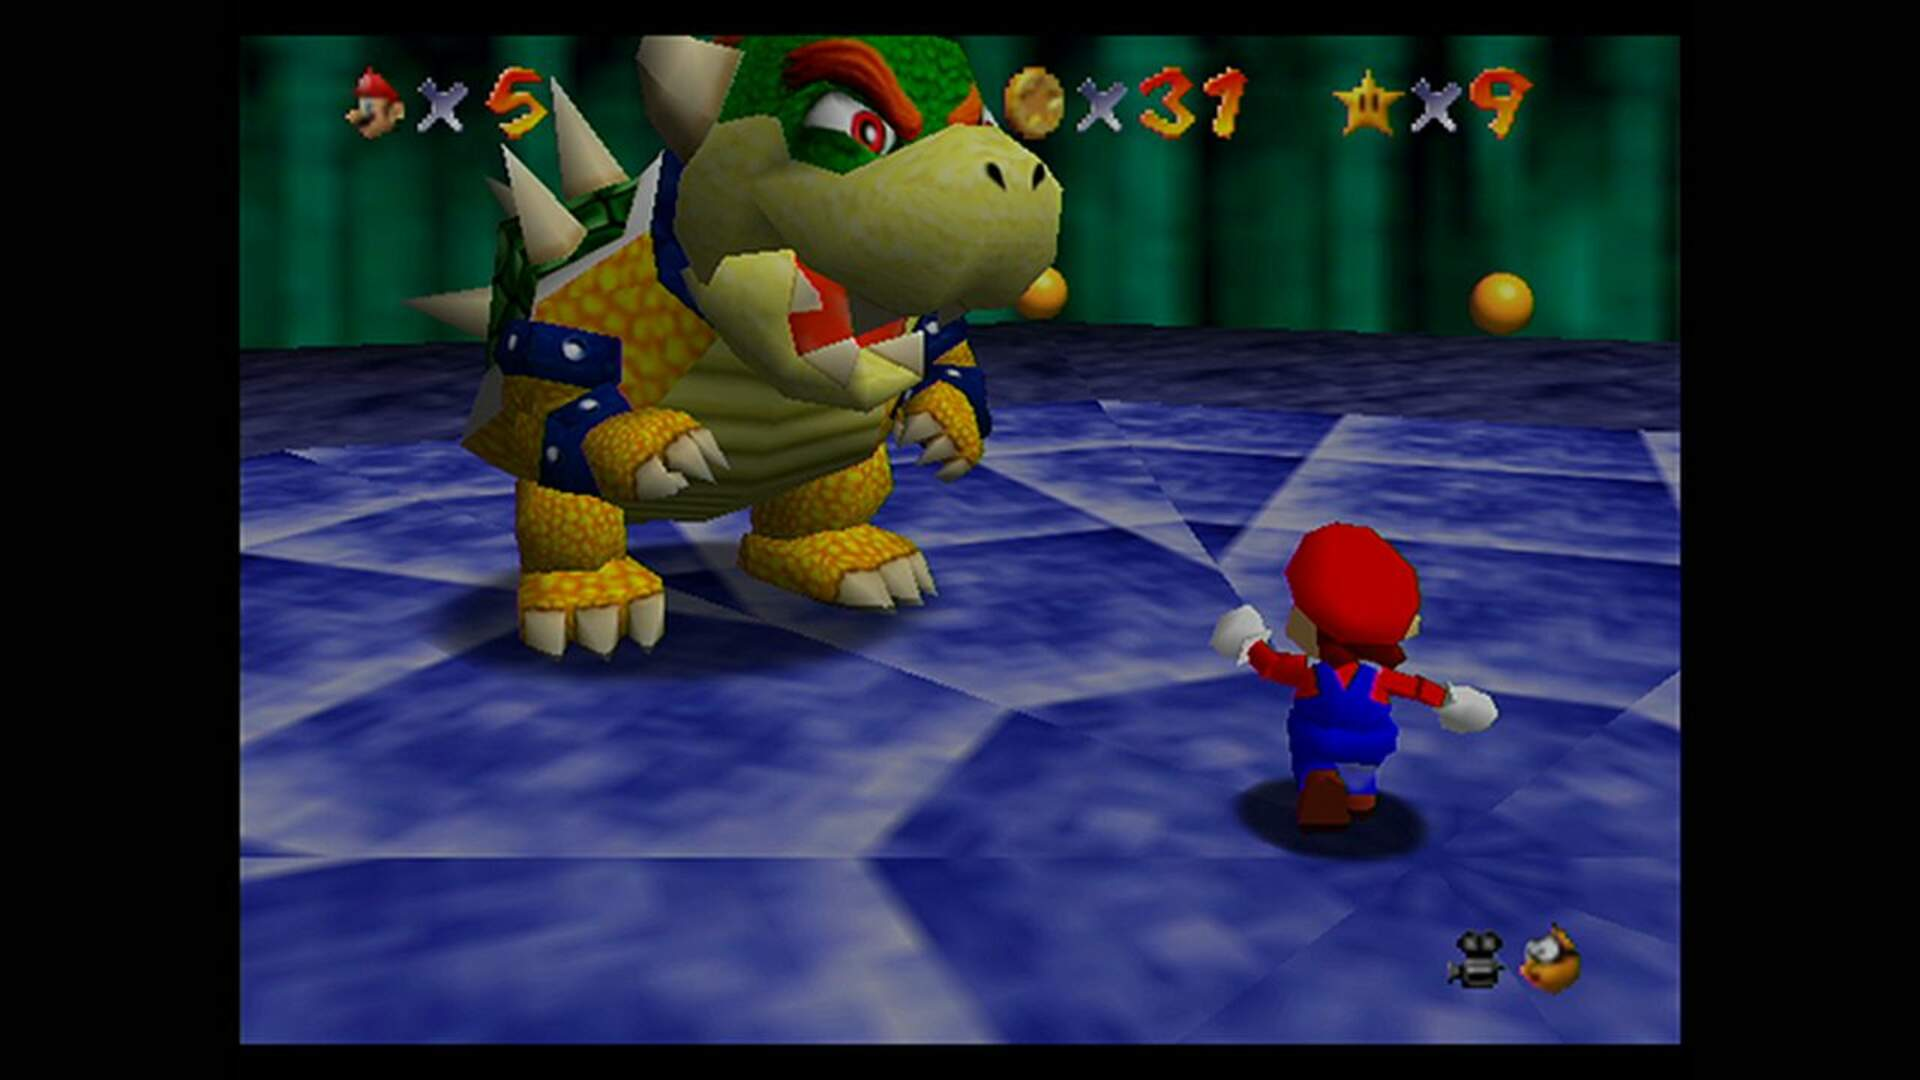 The Mystery of What Mario Says to Bowser Just Before He Commits Regicide in Super Mario 64 Has Finally Been Solved